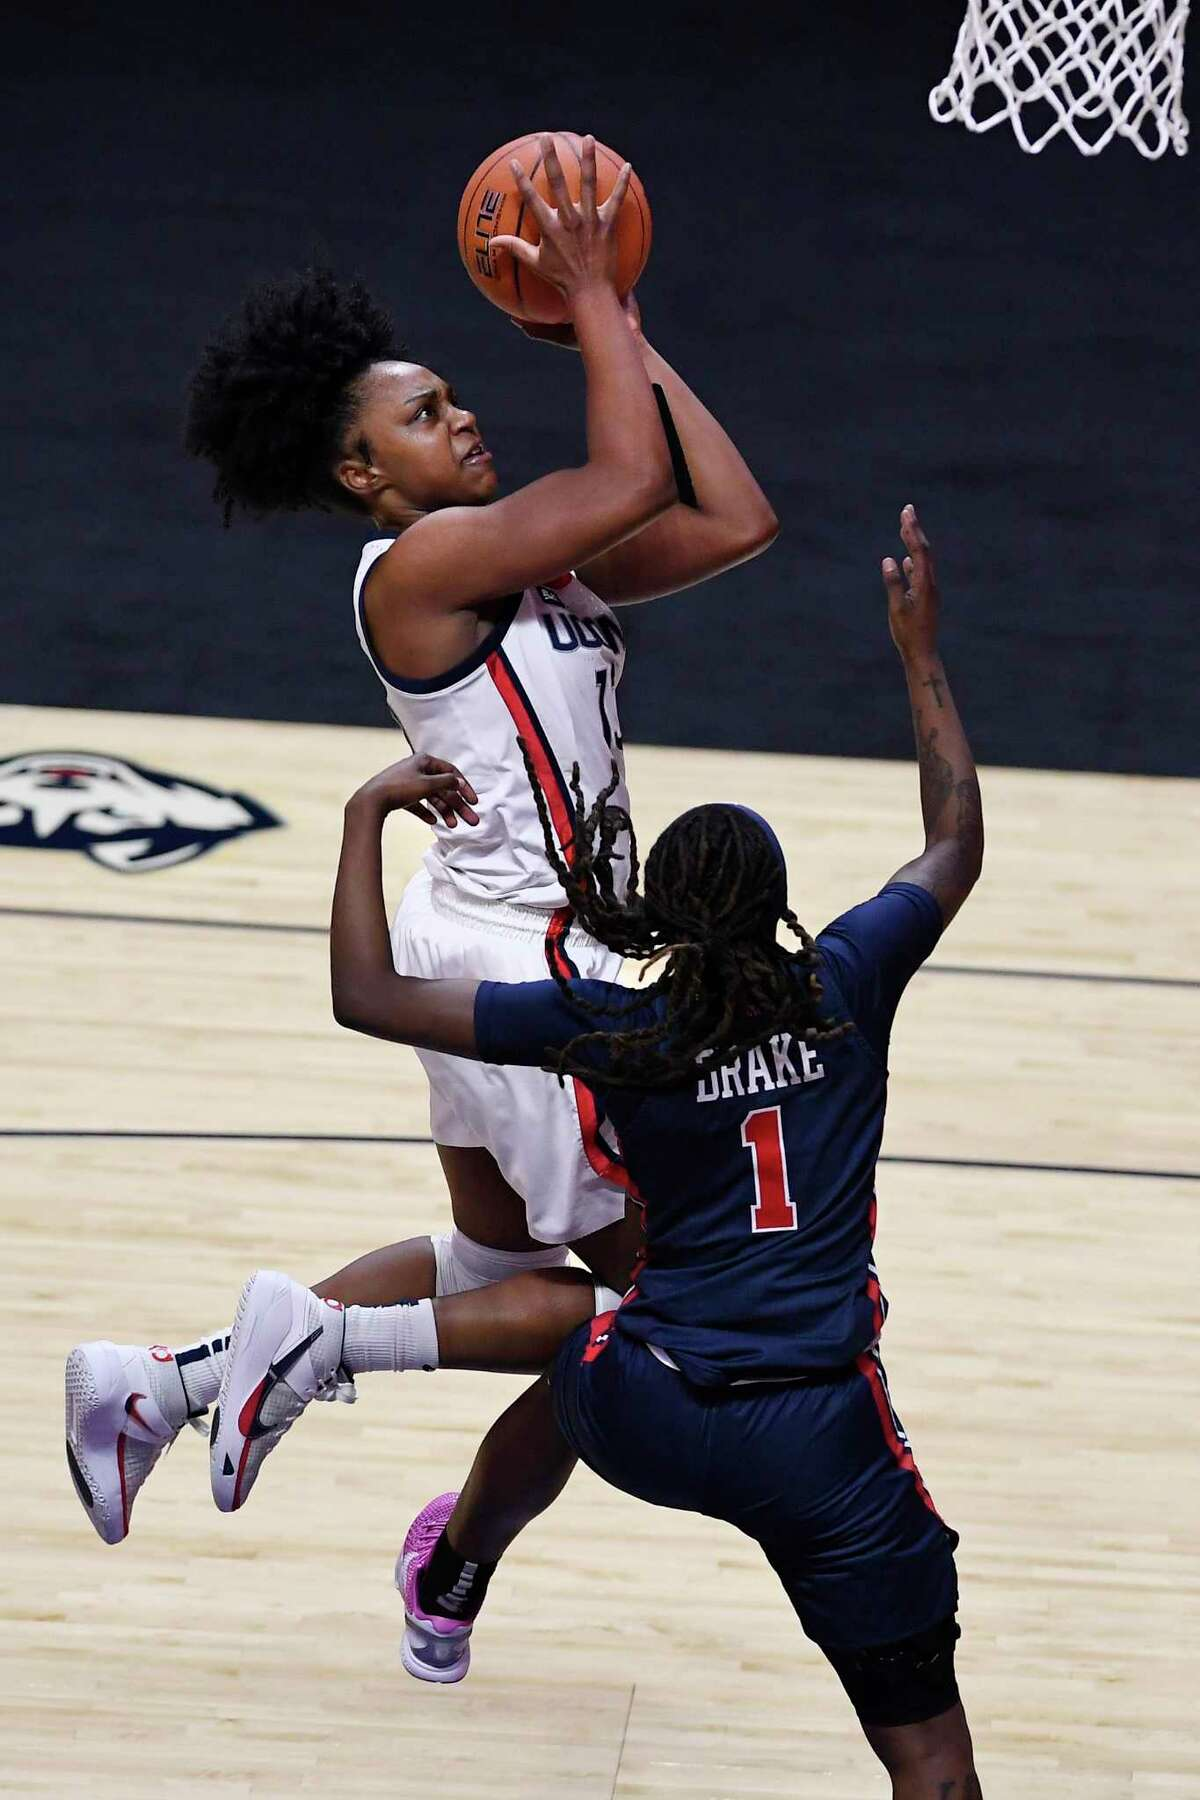 UConn's Christyn Williams, top, makes a basket while fouled by St. John's Unique Drake during the first half of the quarterfinals of the Big East Conference tournament at Mohegan Sun Arena on Saturday in Uncasville.